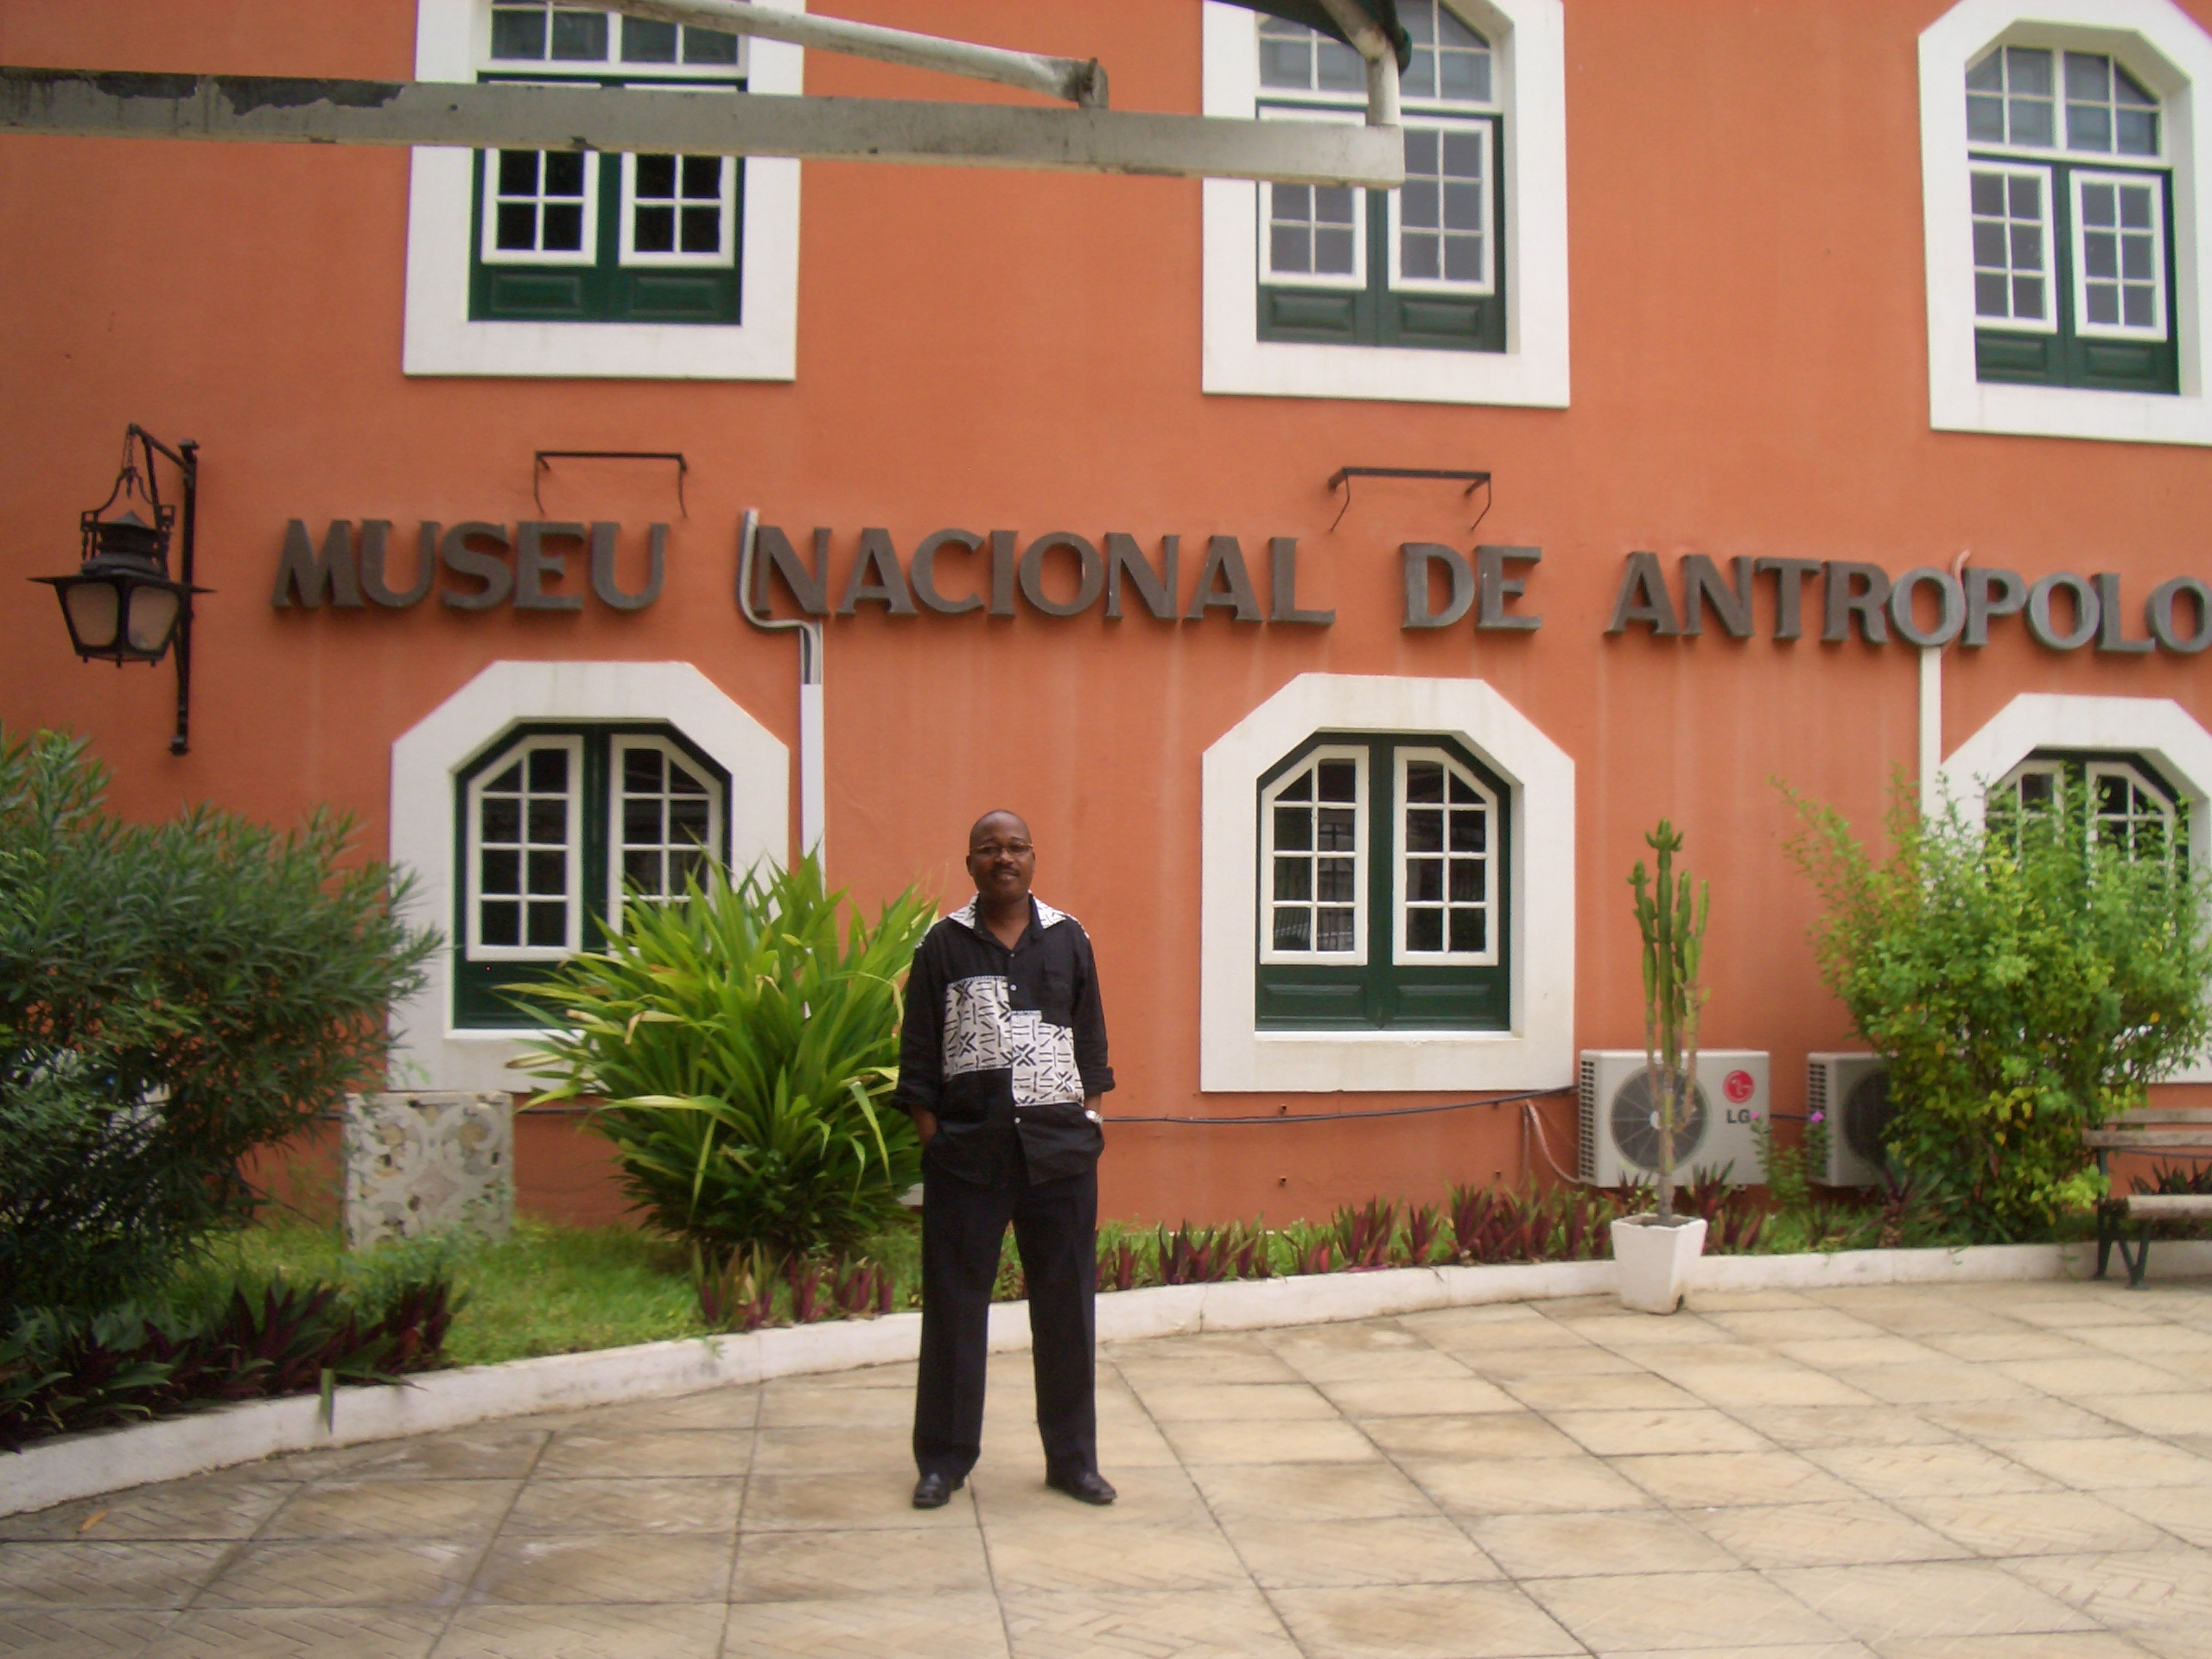 Americo Kwononoka, Director of Angola's National Museum of Anthropology, stands in the courtyard of museum in downtown Luanda.  Photo: Bente Vindvik.